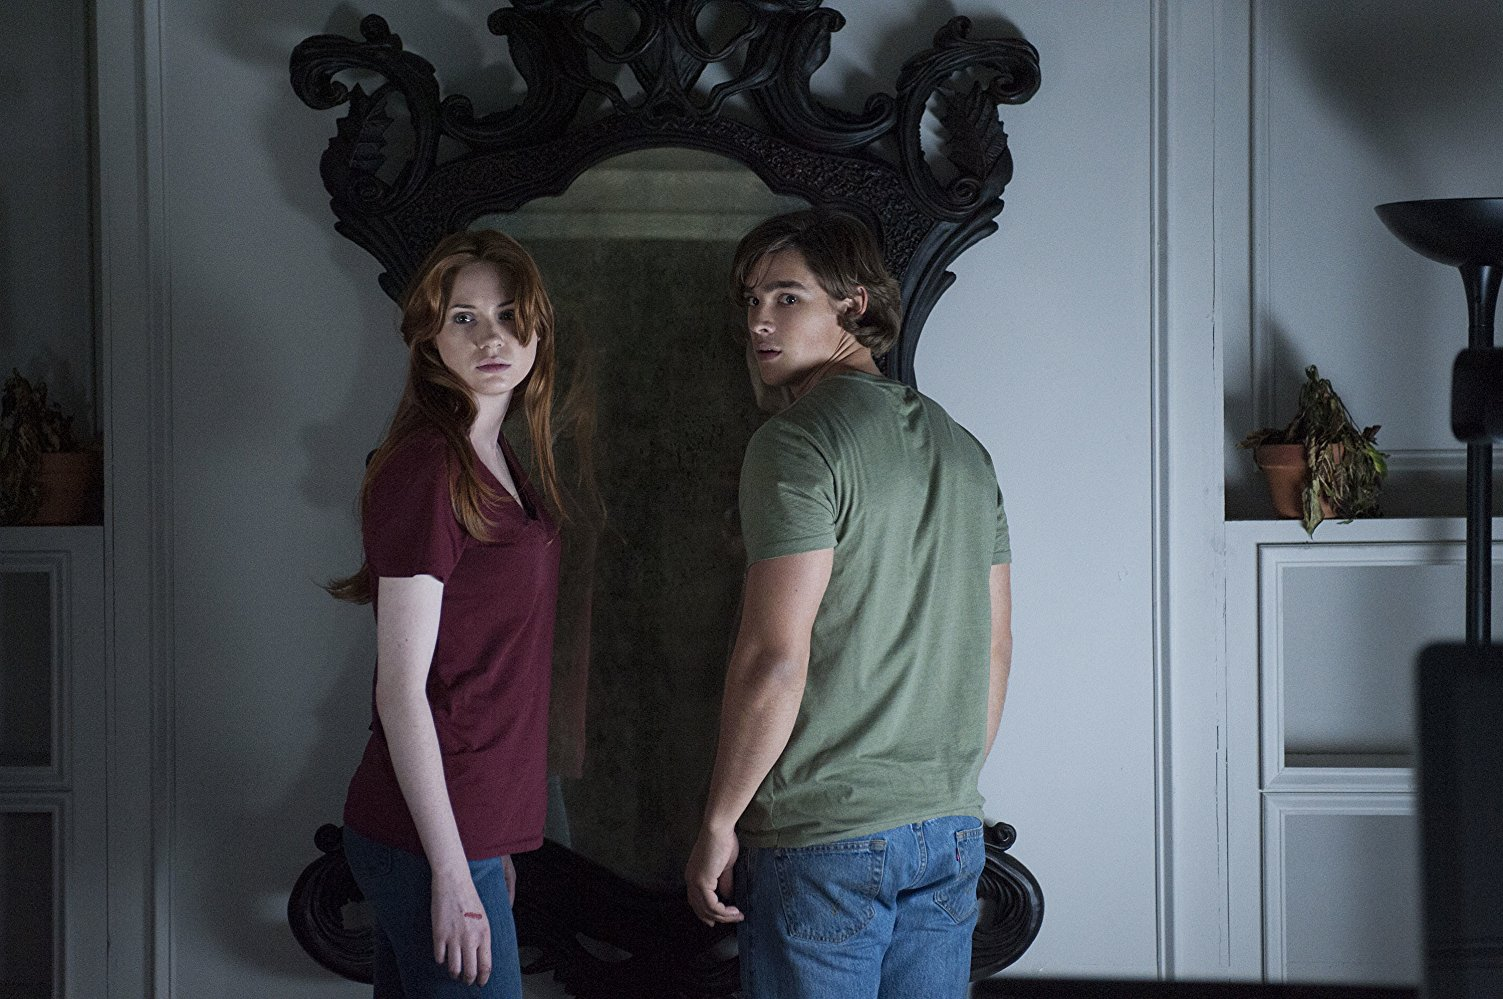 Karen Gillan, Brenton Thwaites and the evil mirror in Oculus (2013)